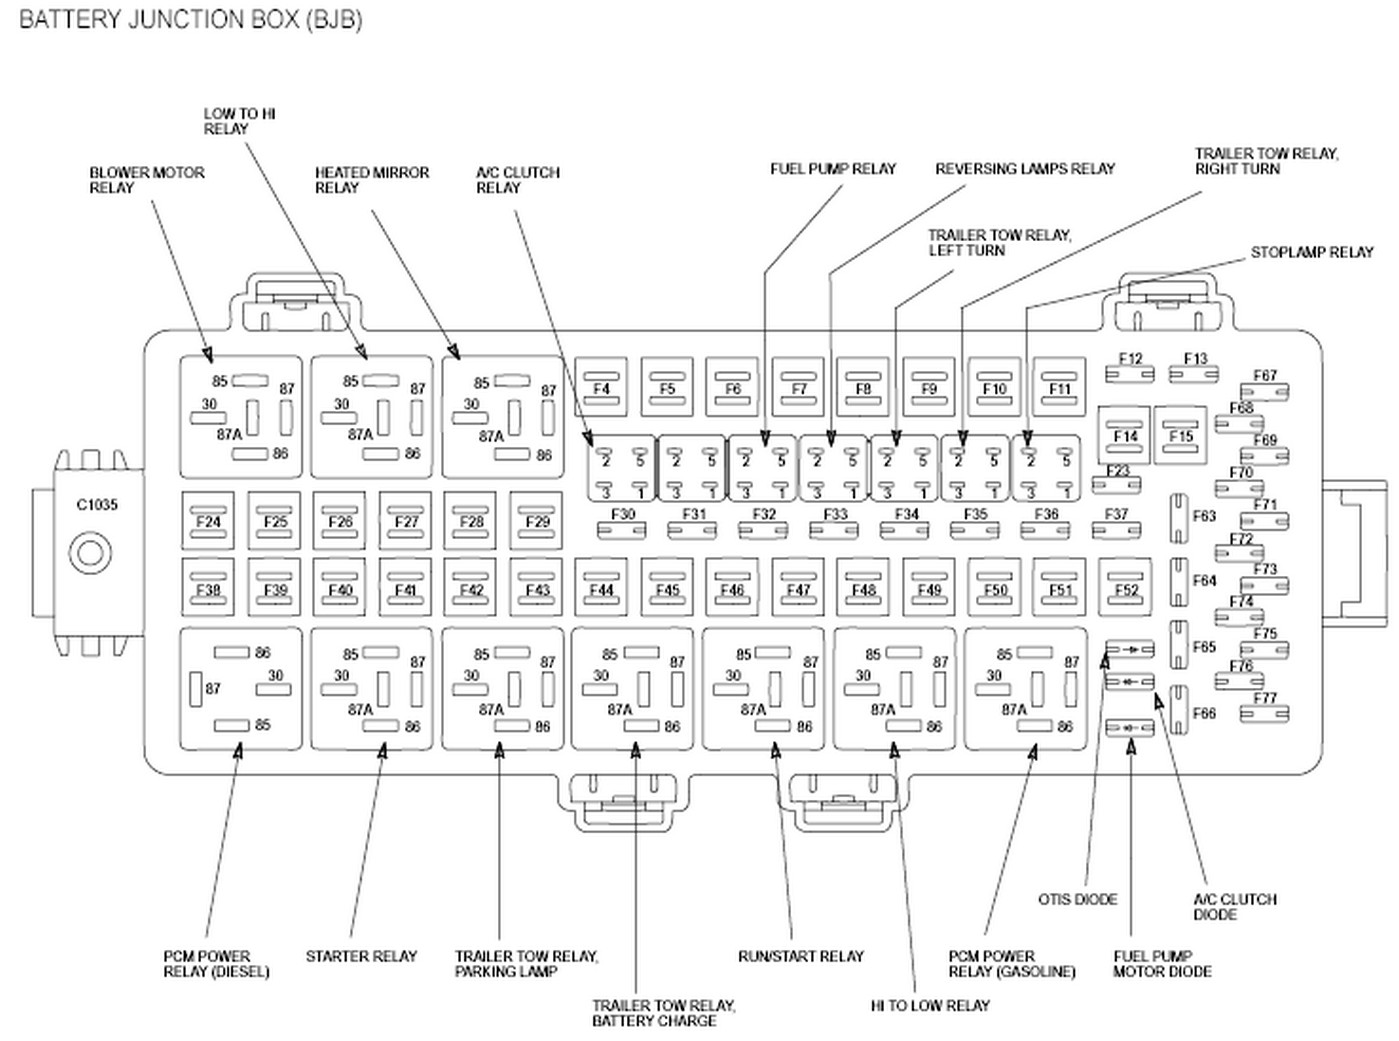 2011 ford f250 fuse box diagram Zoinyhu 2012 f250 fuse box location 2009 ford fusion fuse box diagram  at bayanpartner.co